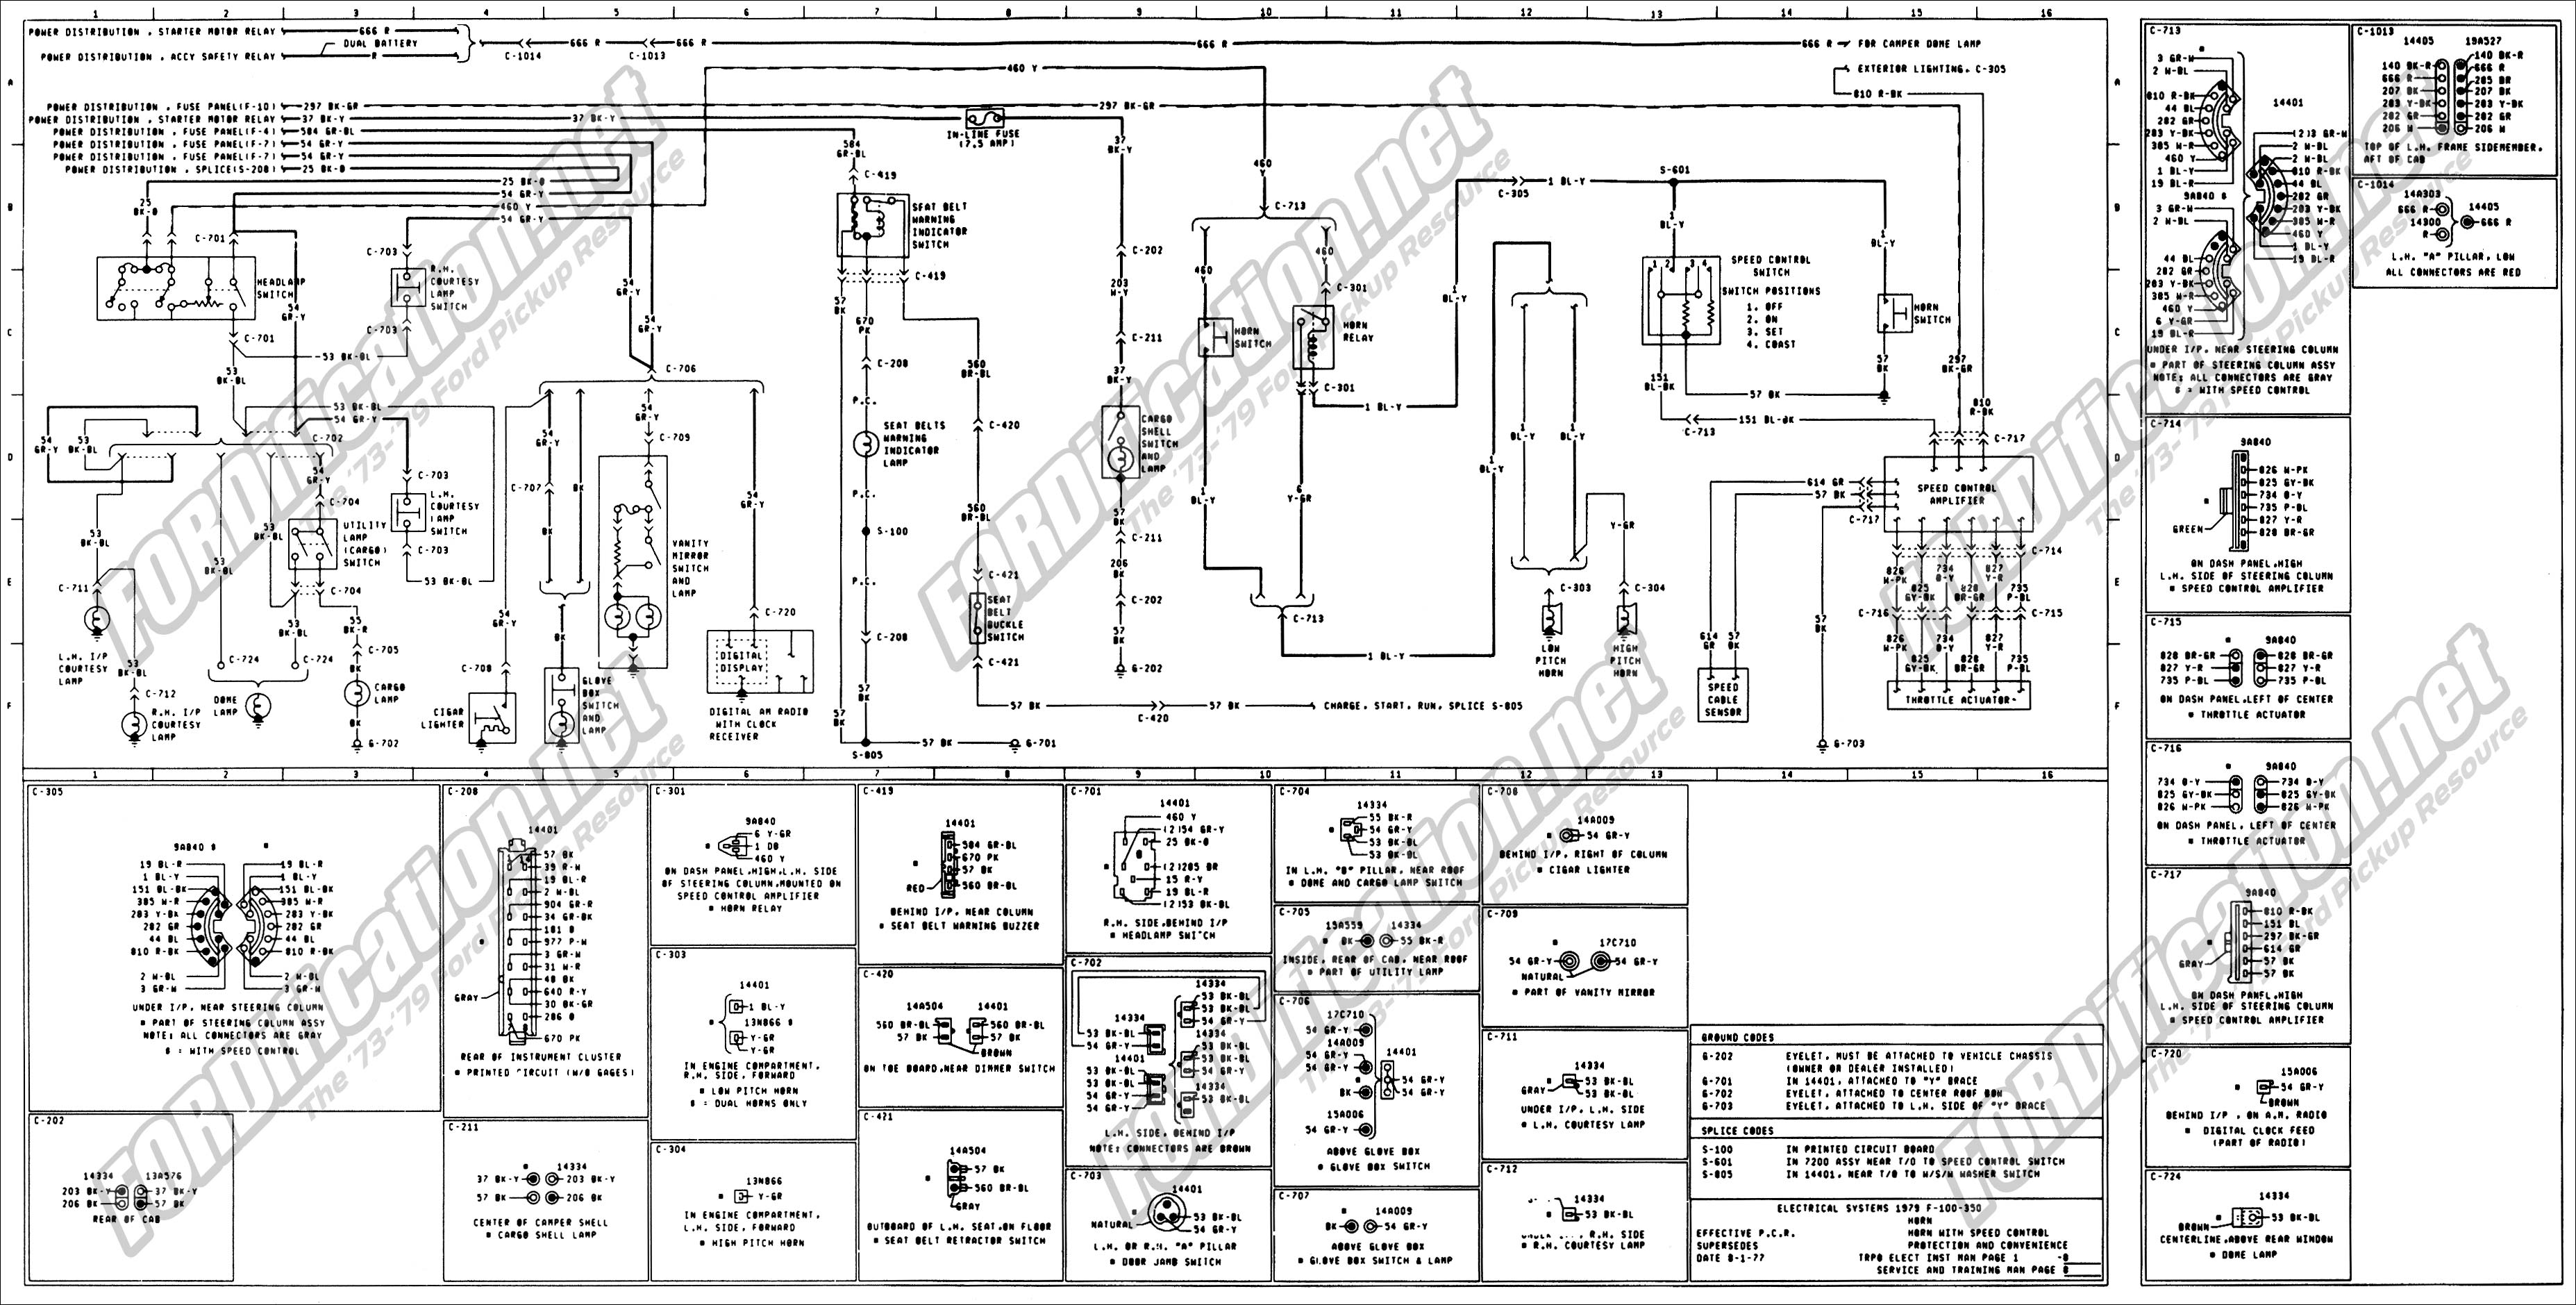 2001 ford f350 wiring diagrams    2001       ford       f350       wiring    schematic free    wiring       diagram        2001       ford       f350       wiring    schematic free    wiring       diagram